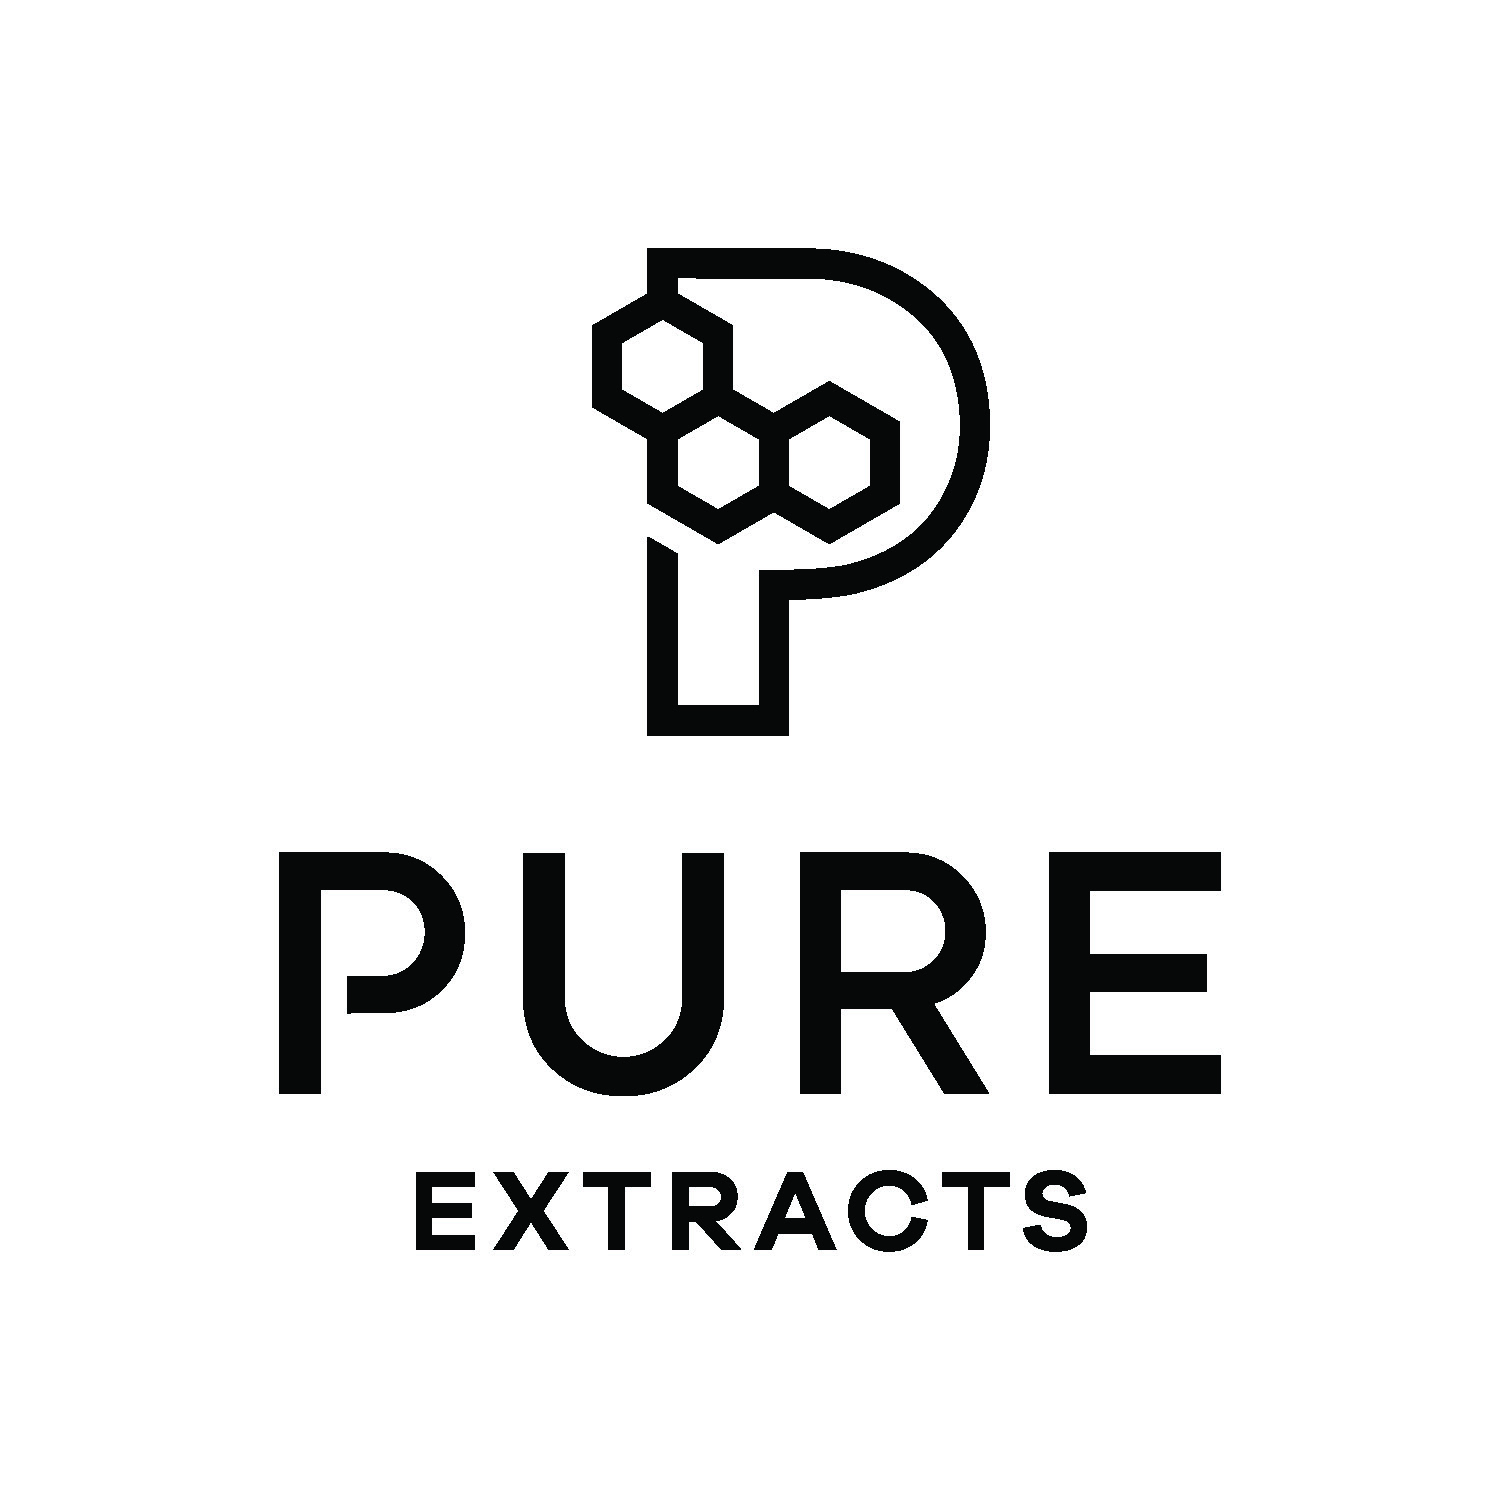 REPEAT - Pure Extracts Delineates Study on Psilocybin Oral Tablets, Capsules and Nasal Gel